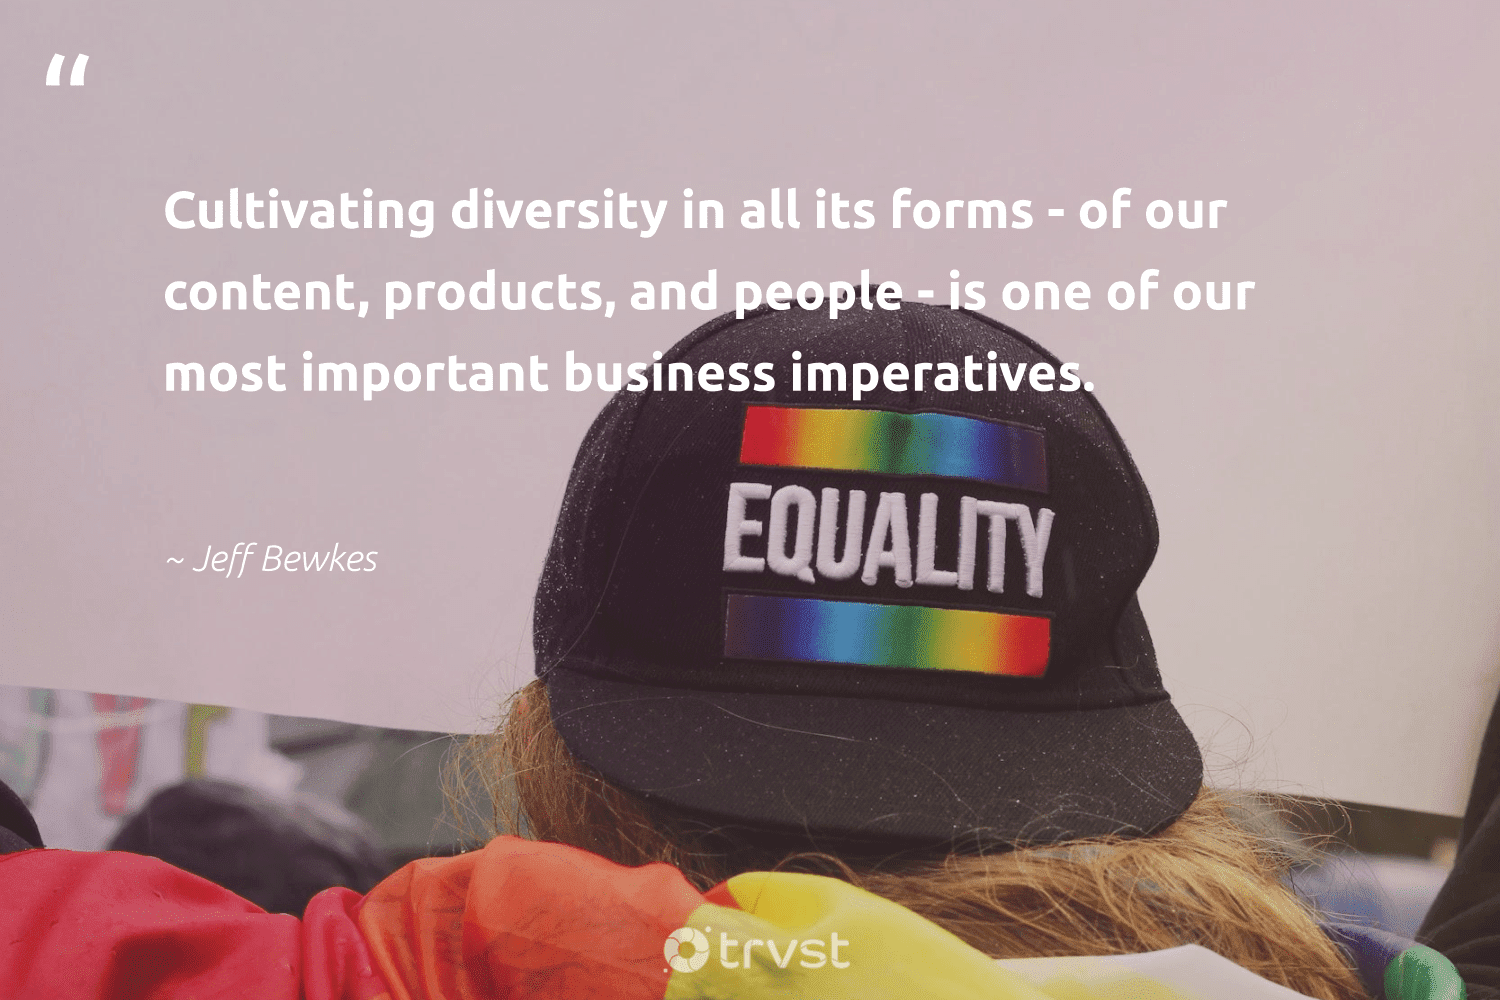 """""""Cultivating diversity in all its forms - of our content, products, and people - is one of our most important business imperatives.""""  - Jeff Bewkes #trvst #quotes #diversity #inclusion #discrimination #giveback #socialchange #thinkgreen #representationmatters #makeadifference #socialgood #changetheworld"""